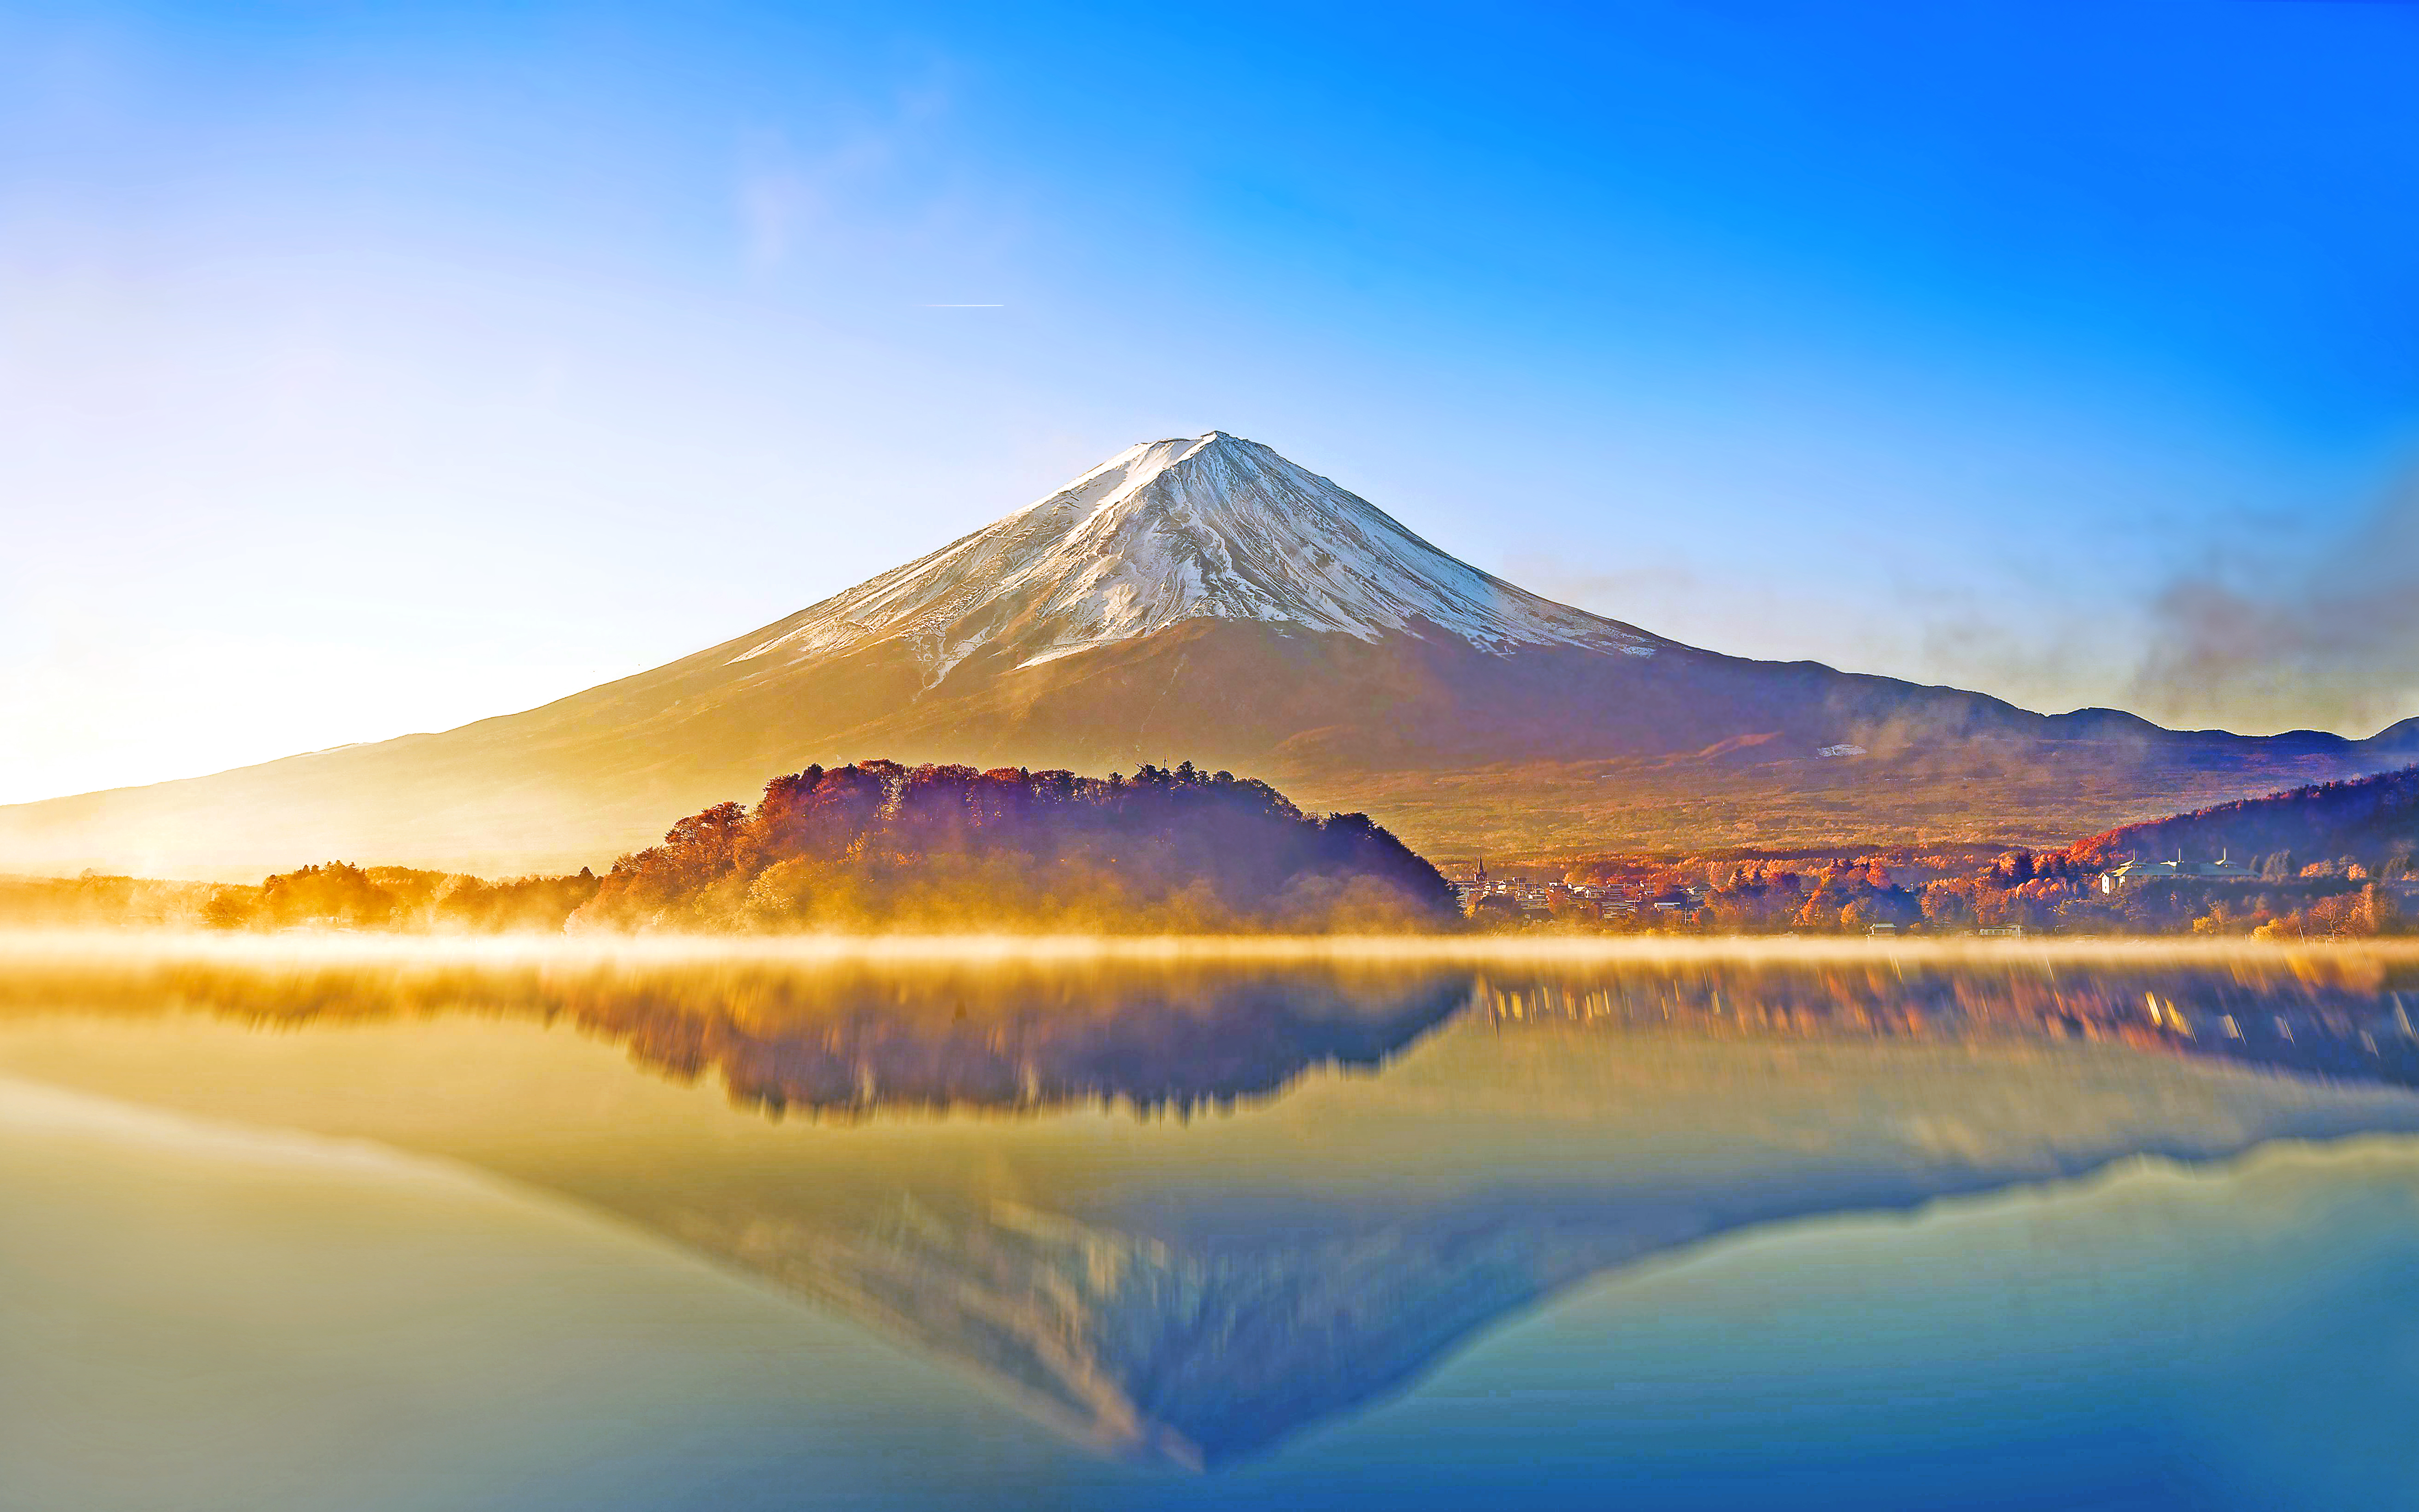 Mount Fuji Wallpapers and Background Images   stmednet 5234x3272